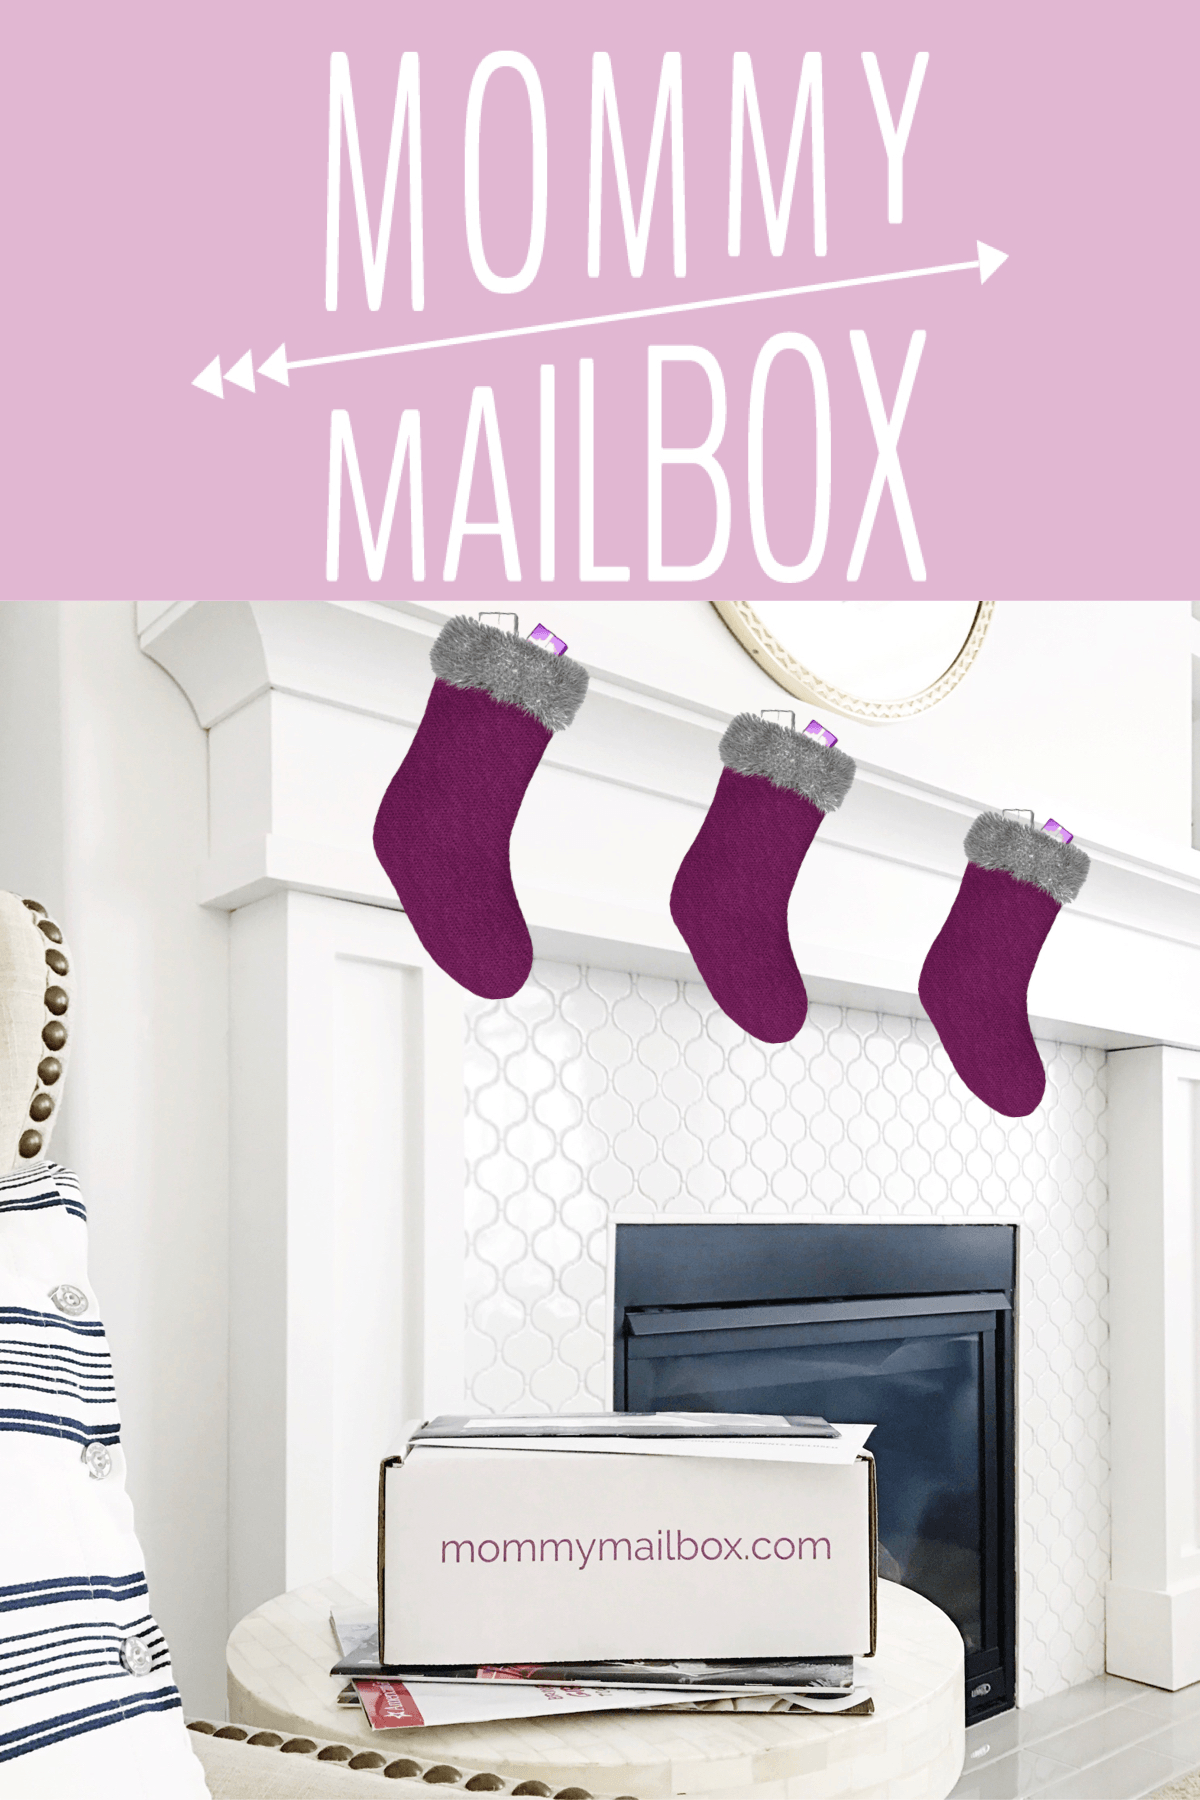 Mommy Mailbox & Miss Mailbox Cyber Monday Deal: 20% Off